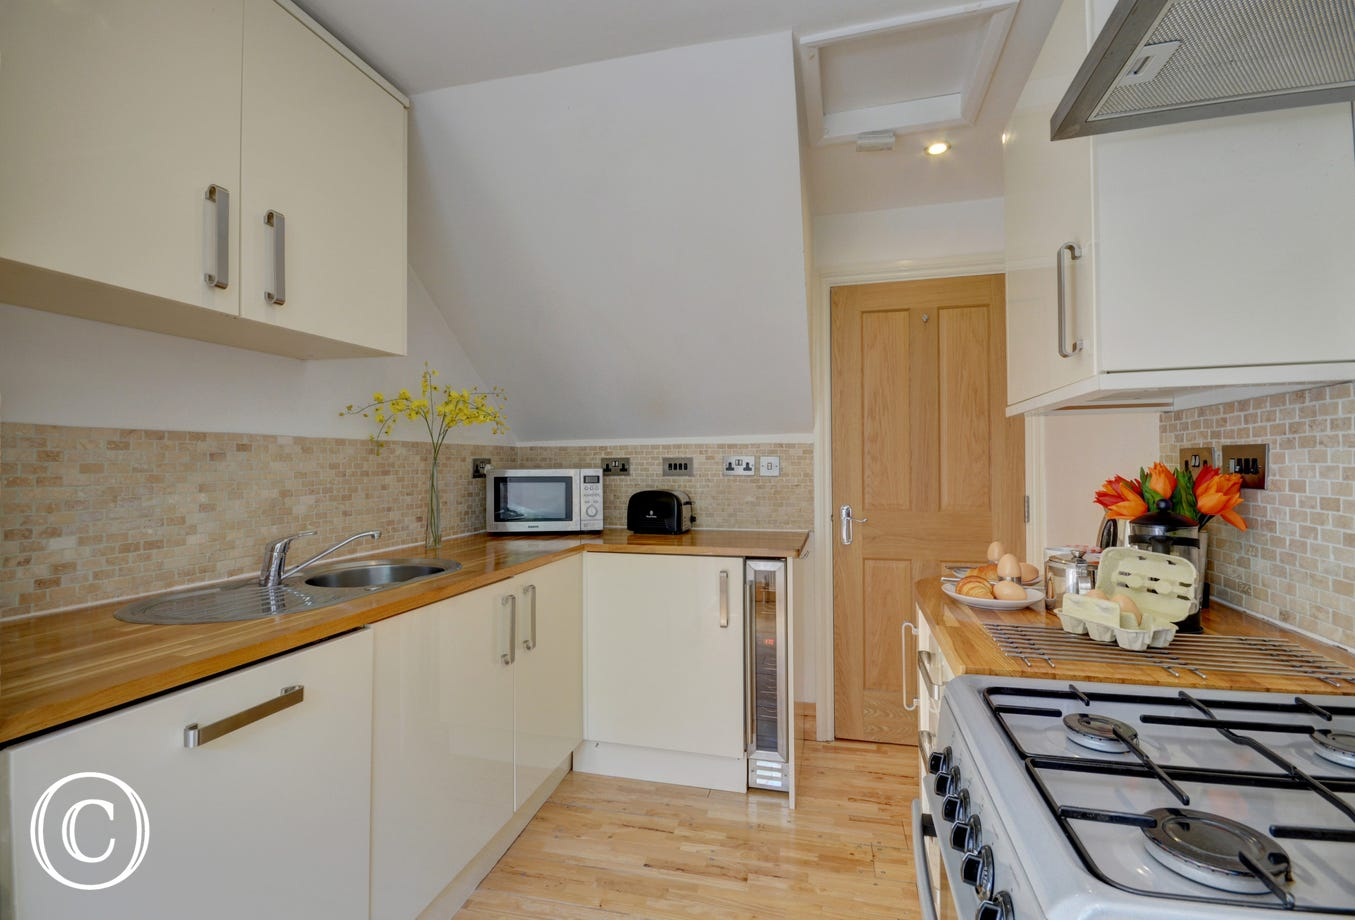 A modern well equipped kitchen provides everything you could need